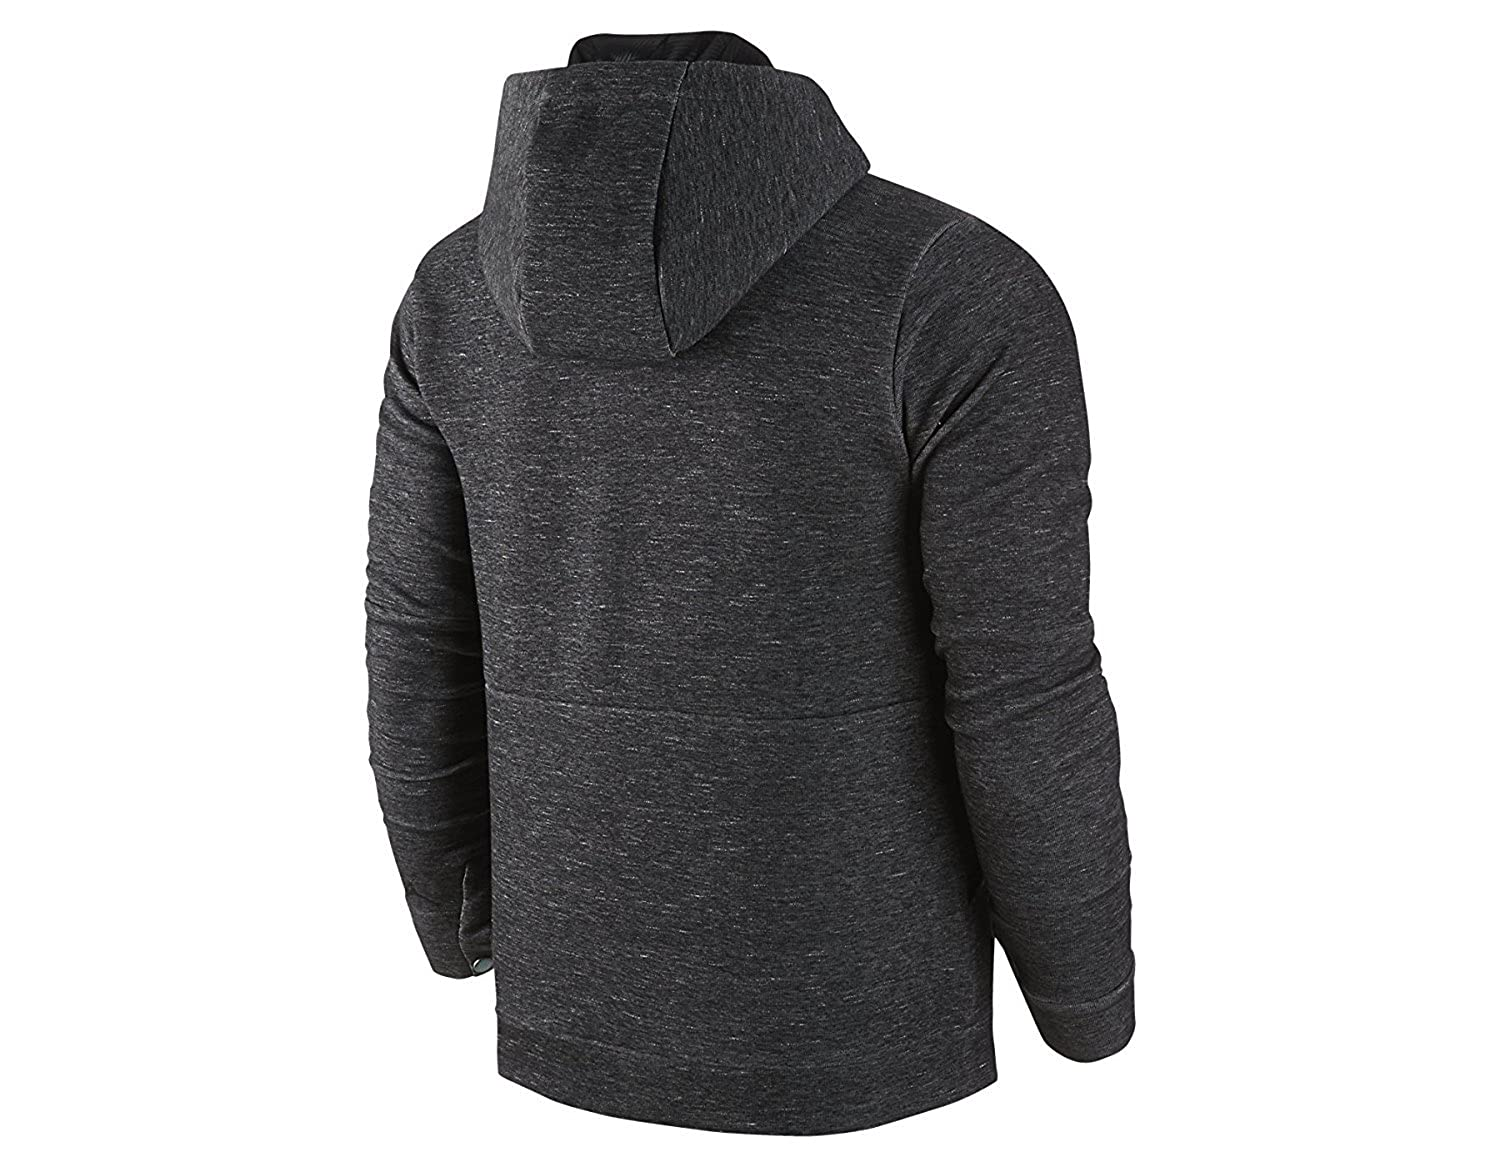 Amazon.com: Jordan Mens Jordan Grey Air Jordan Retro 11 Pinnacle Fleece Hoodie 2XL Grey: Sports & Outdoors